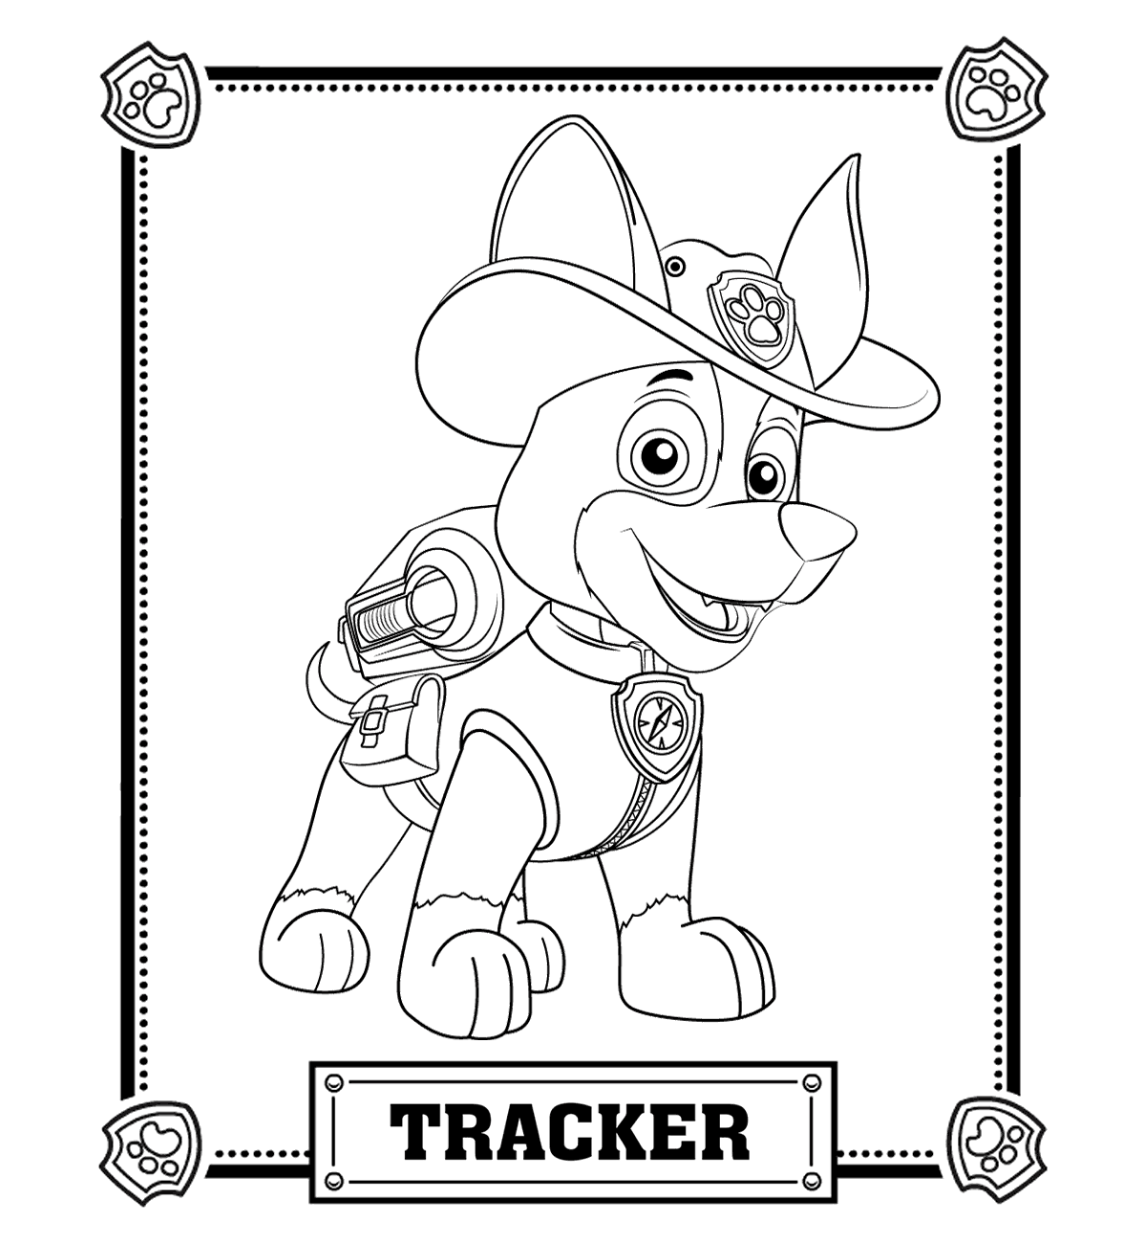 Paw patrol coloring pages happy birthday - Paw Patrol Tracker Coloring Pages